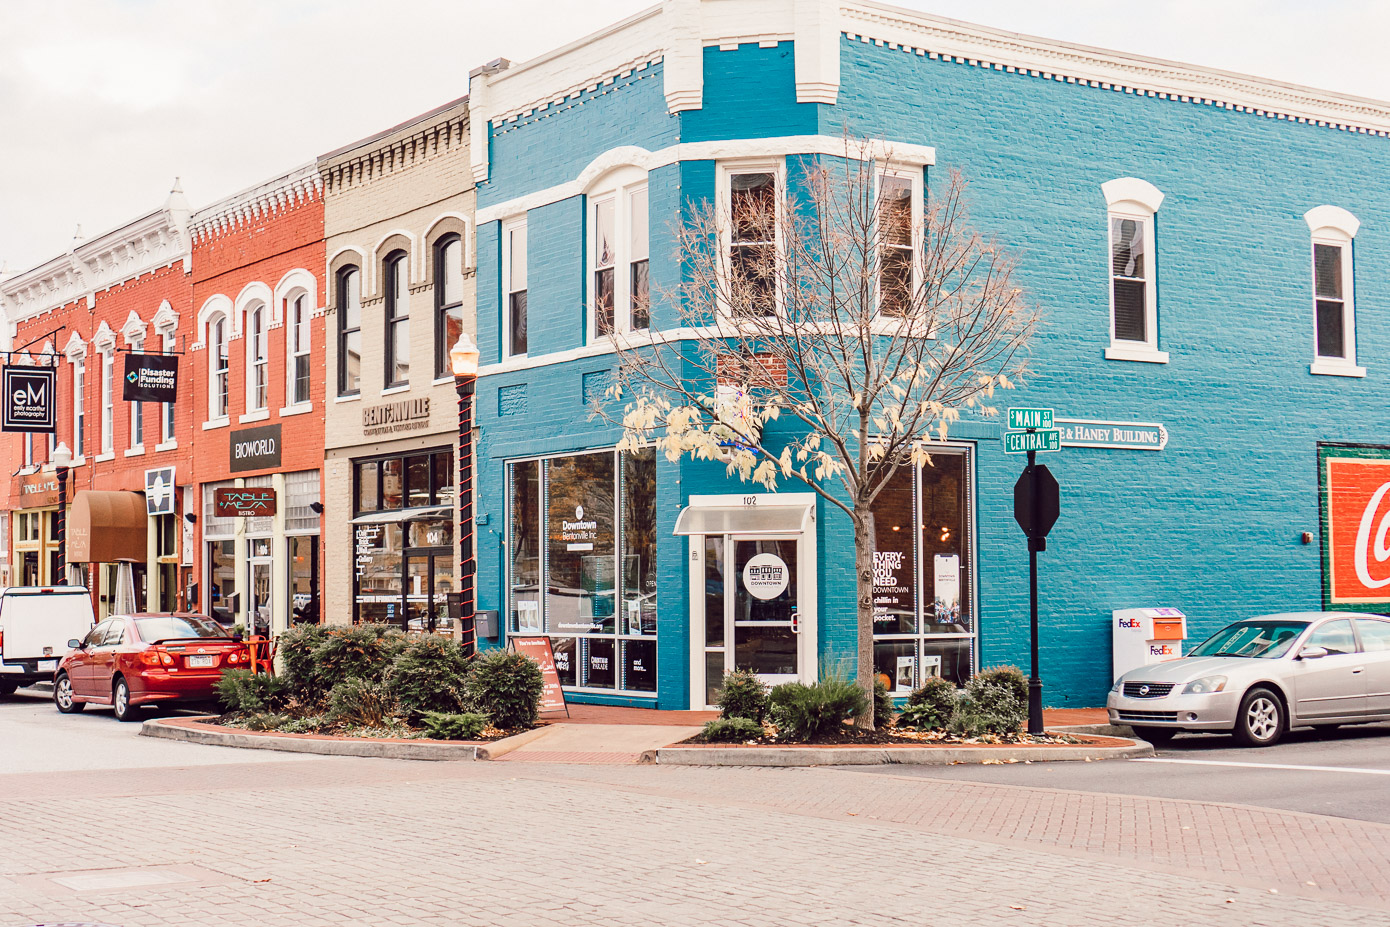 Bentonville Arkansas Travel Diary featured on Louella Reese | Unexpected Long Weekend Getaway